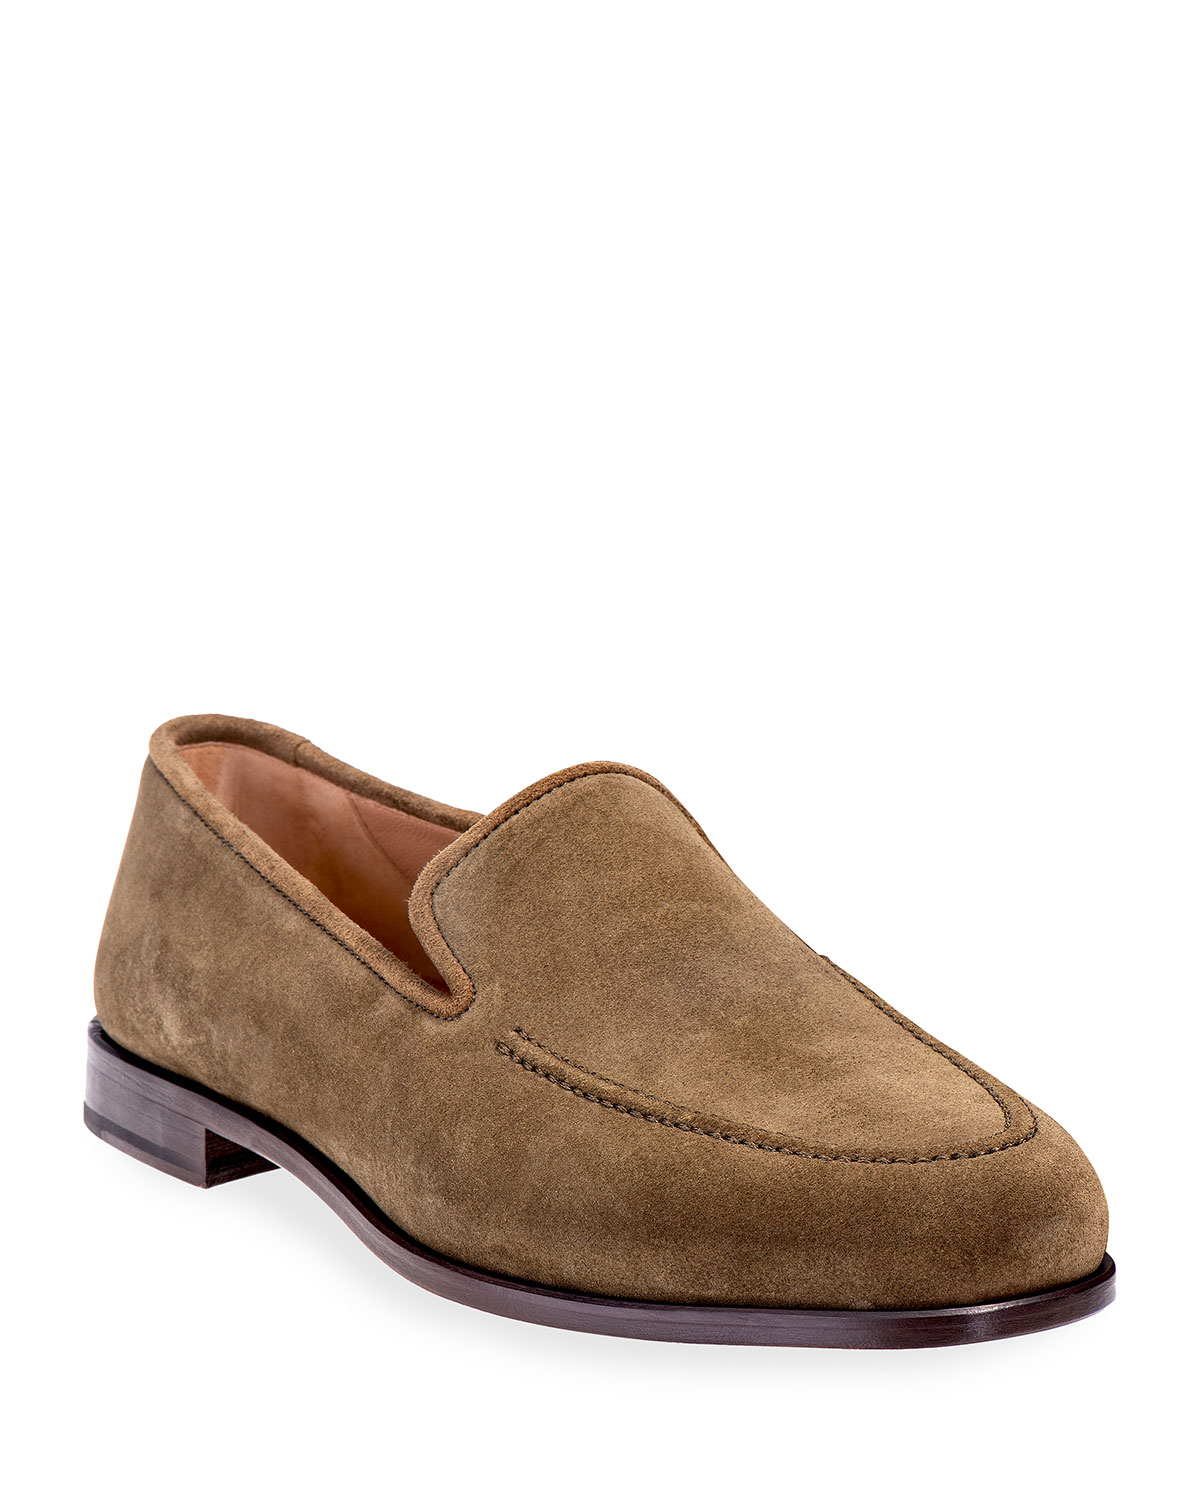 Stubbs and Wootton Men's Venetian Apron-Toe Suede Loafers